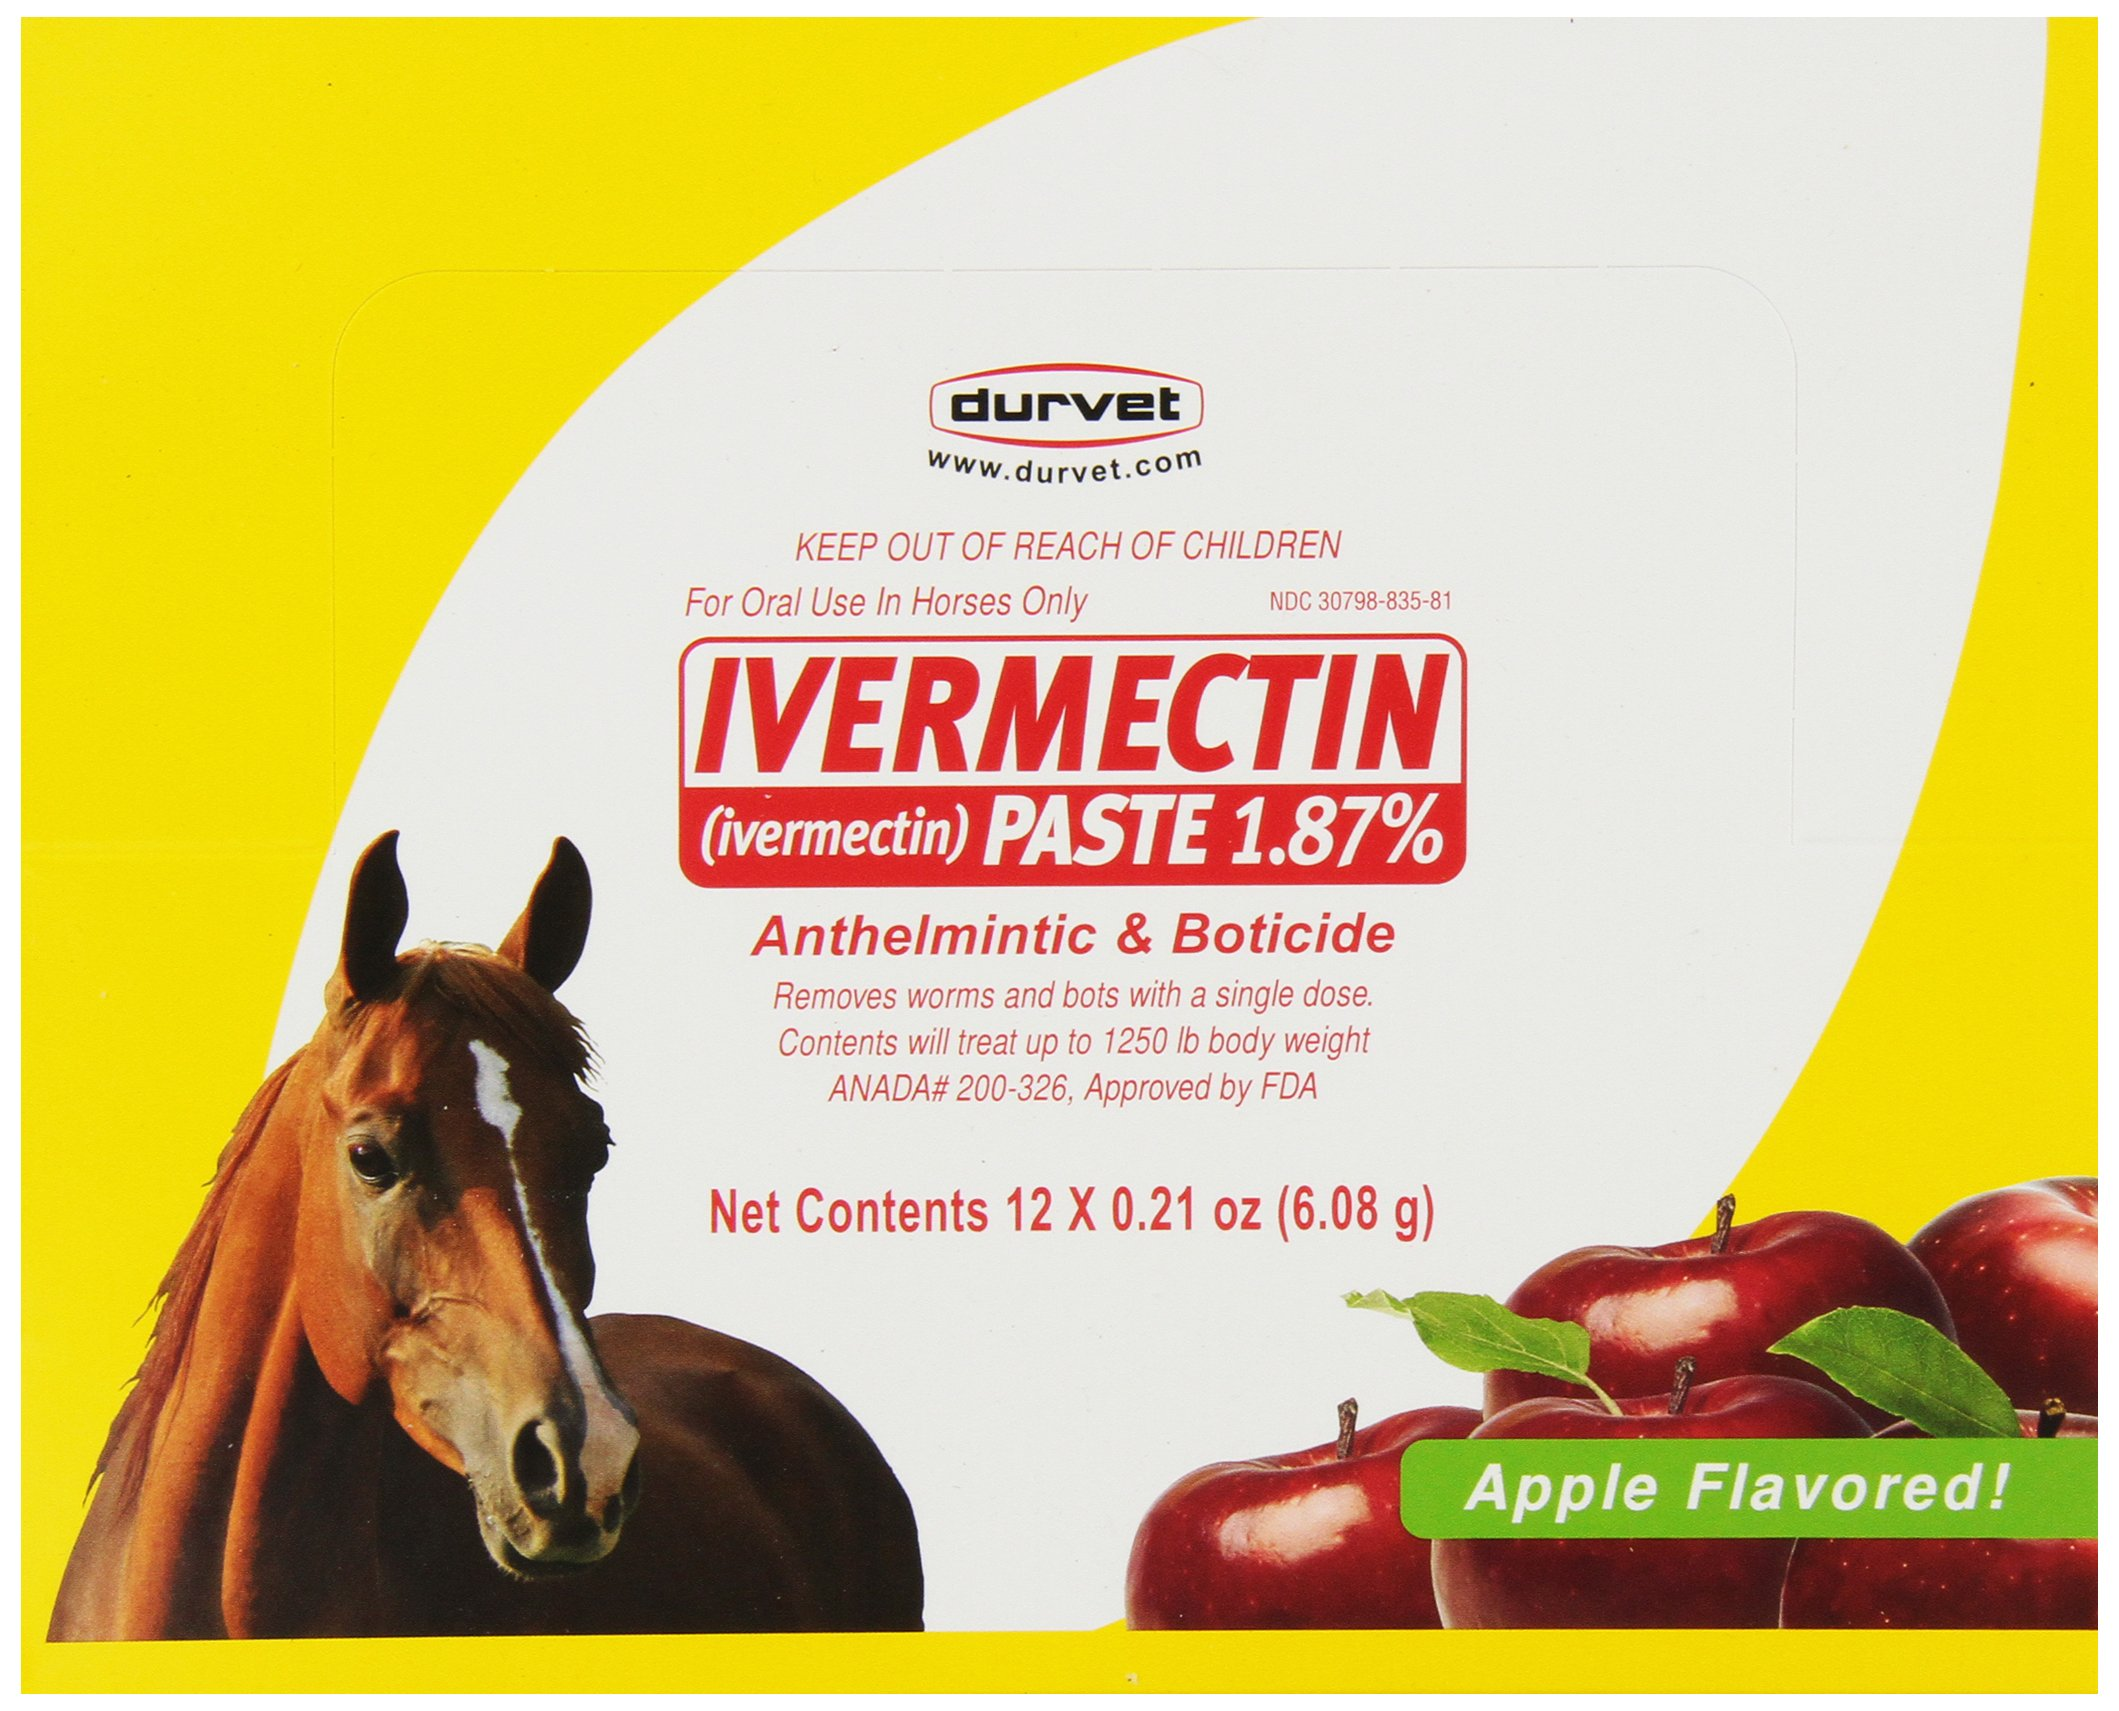 Durvet 12-Pack Ivermectin Dewormer Paste for Horses by Durvet